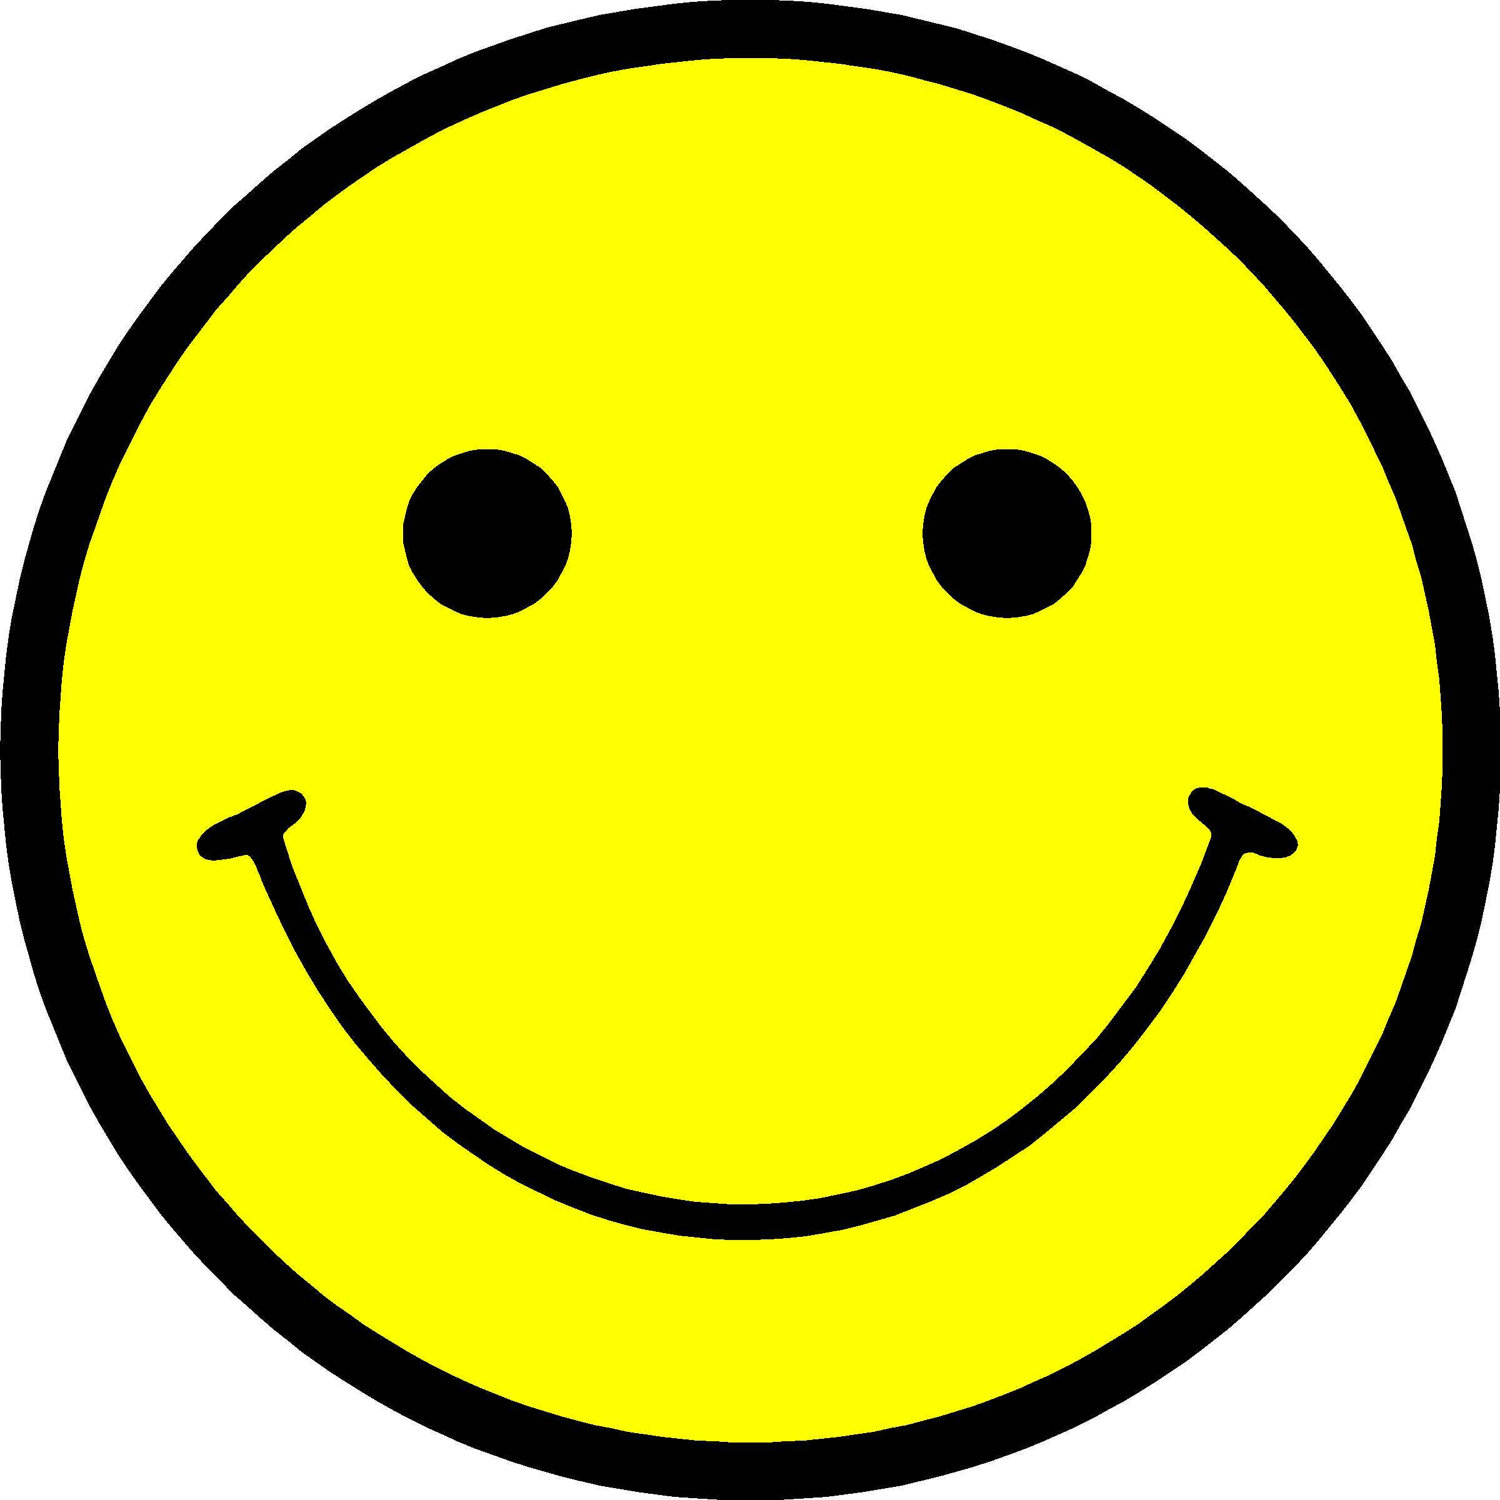 Free Smiley Face Symbol Download Free Clip Art Free Clip Art On Clipart Library